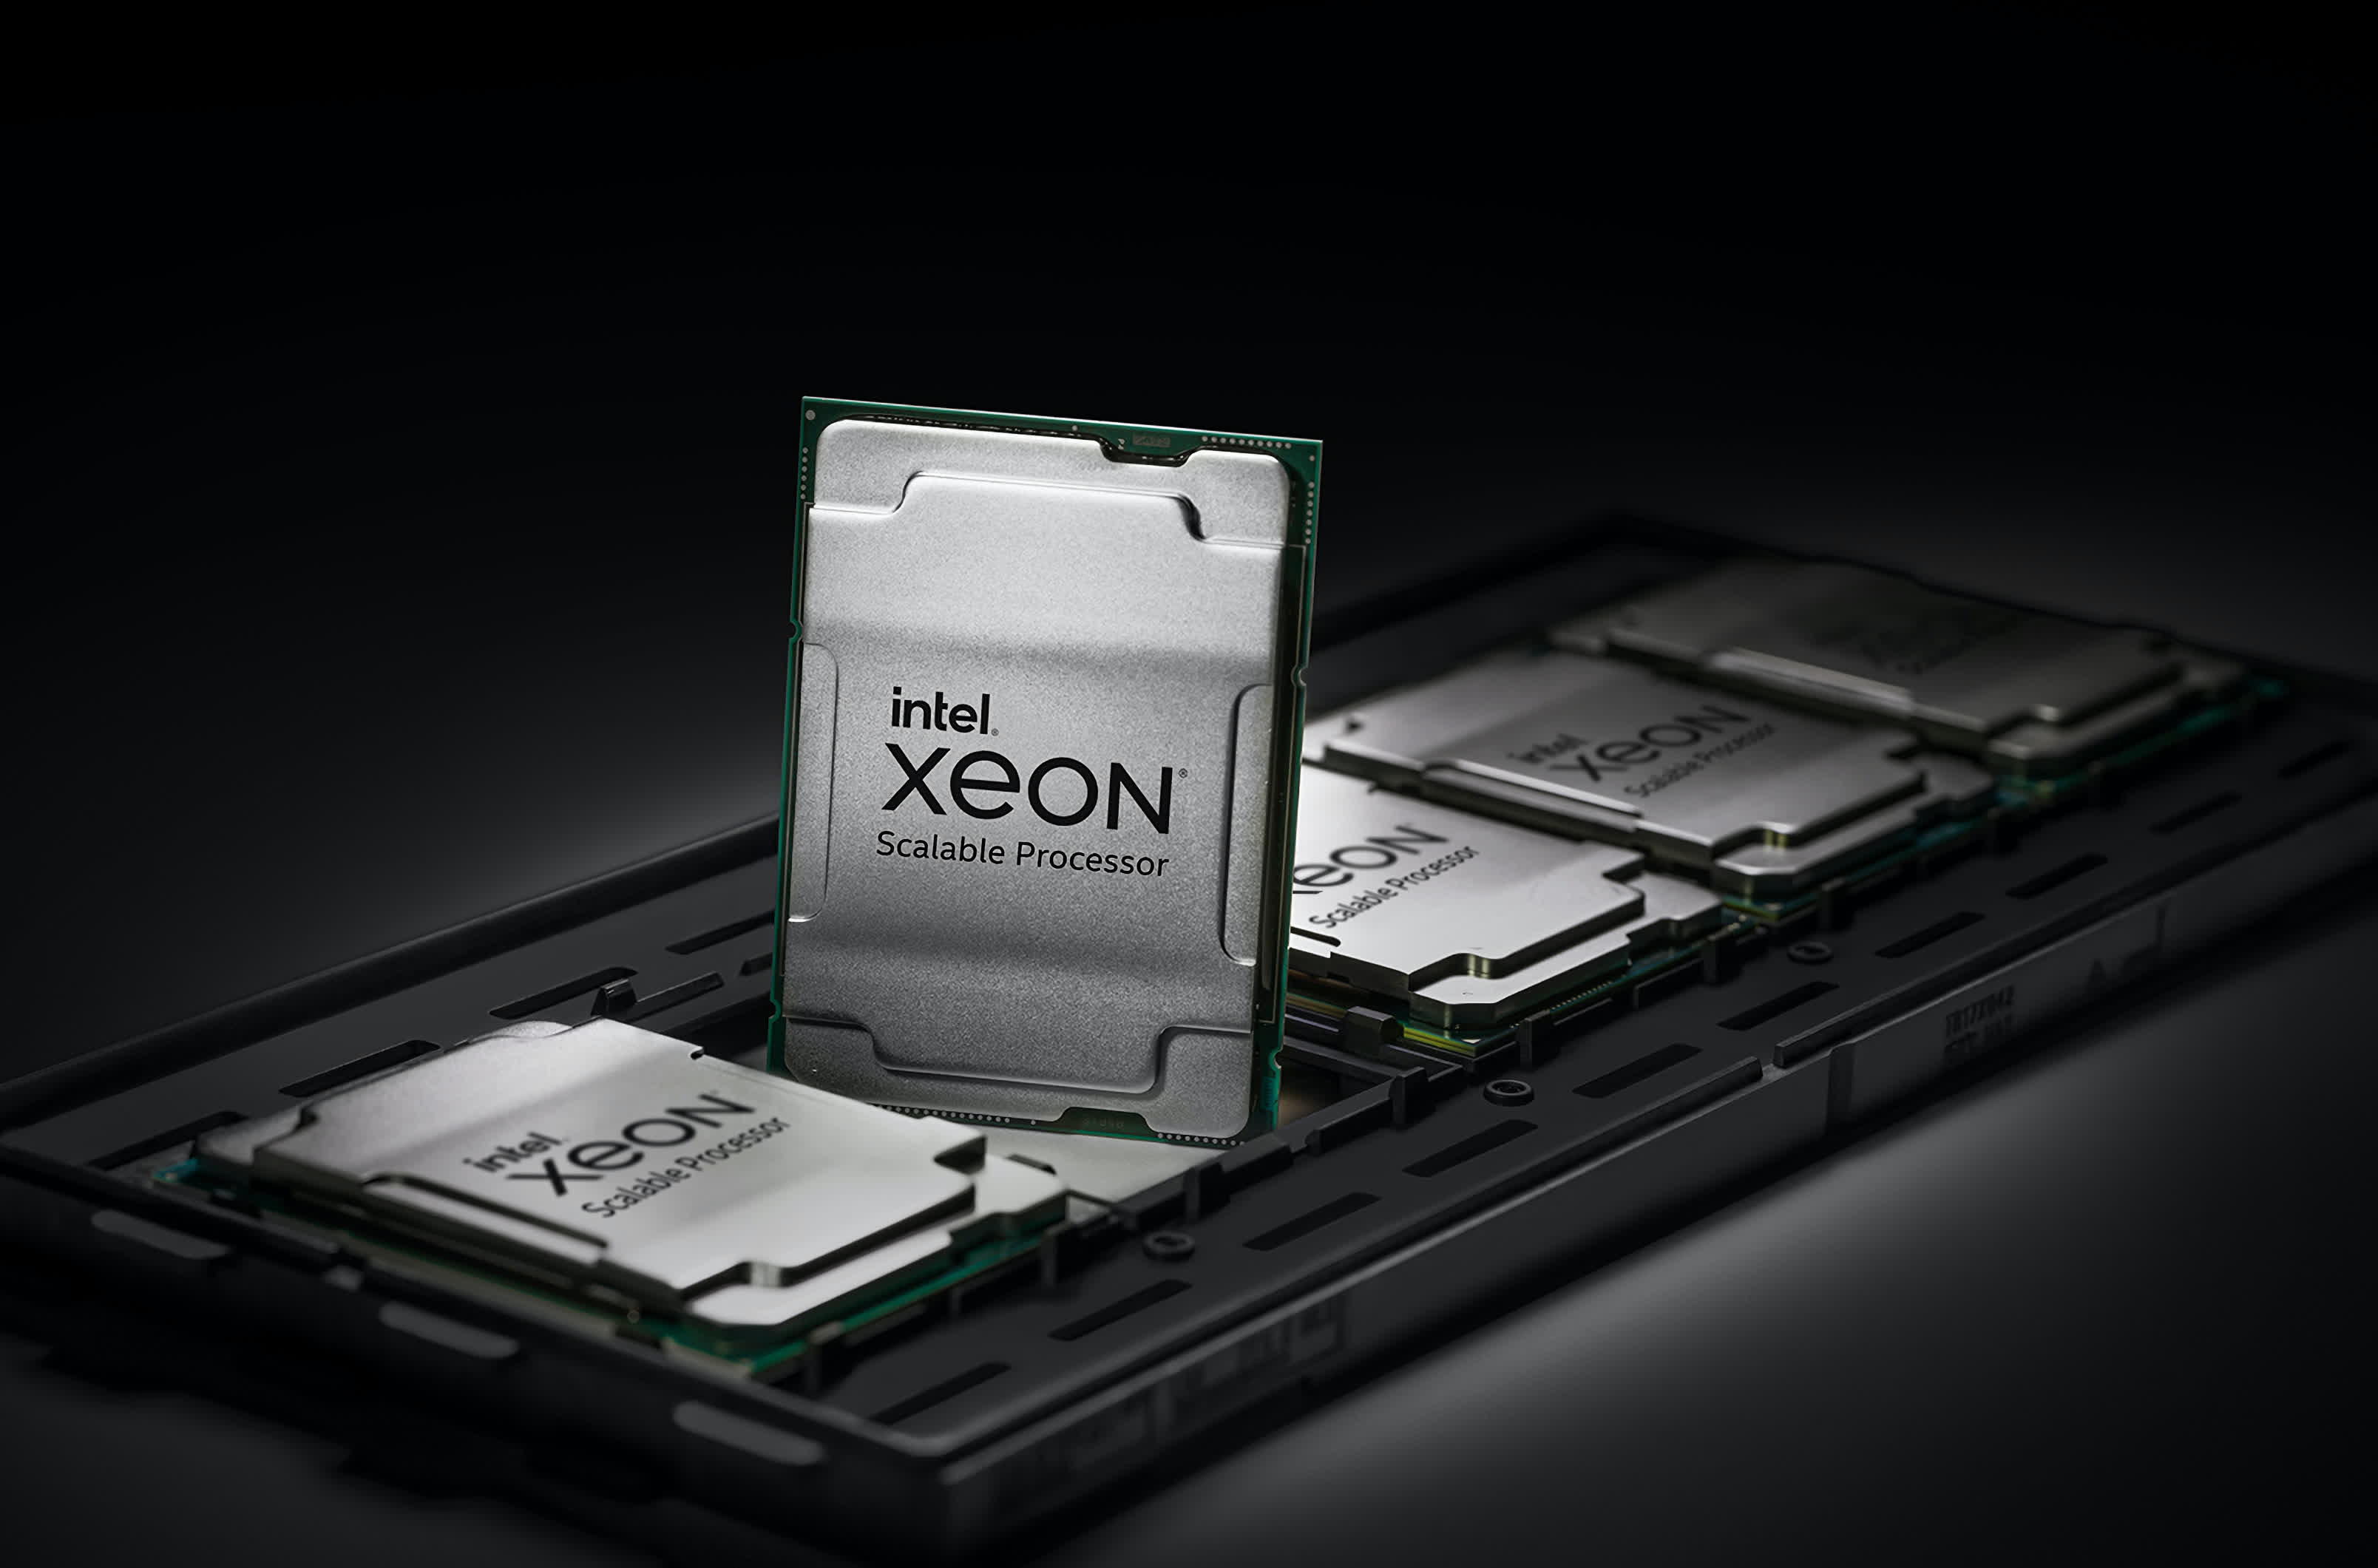 Intel is using heavy discounts on Xeon CPUs to stop AMD from eating its server lunch